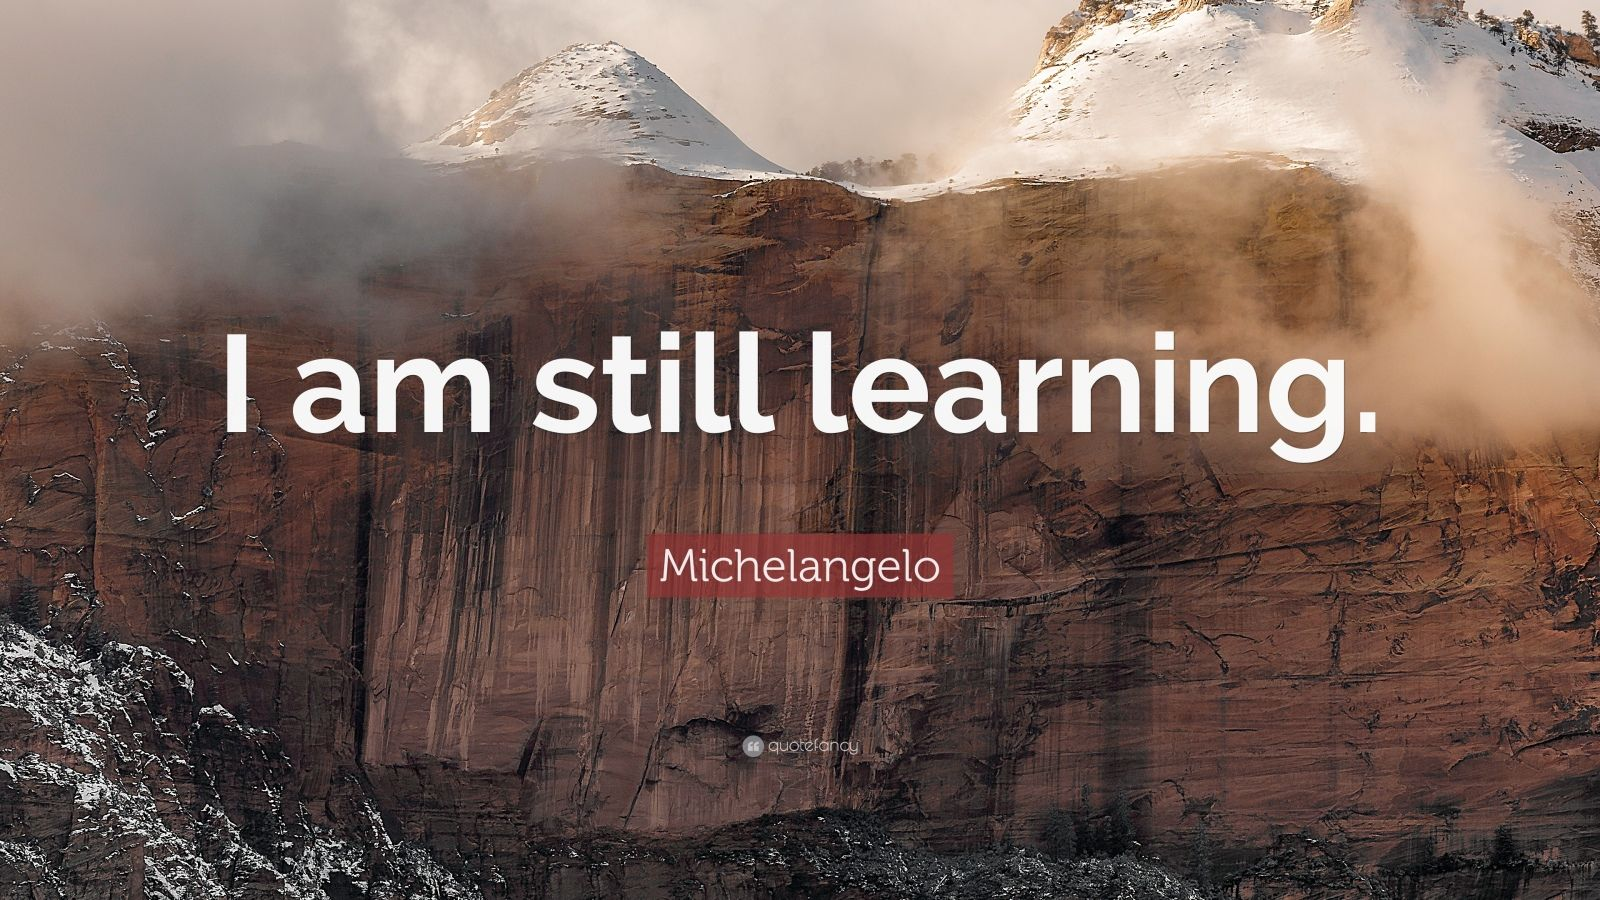 Love Inspiring Quotes Wallpaper Michelangelo Quote I Am Still Learning 17 Wallpapers